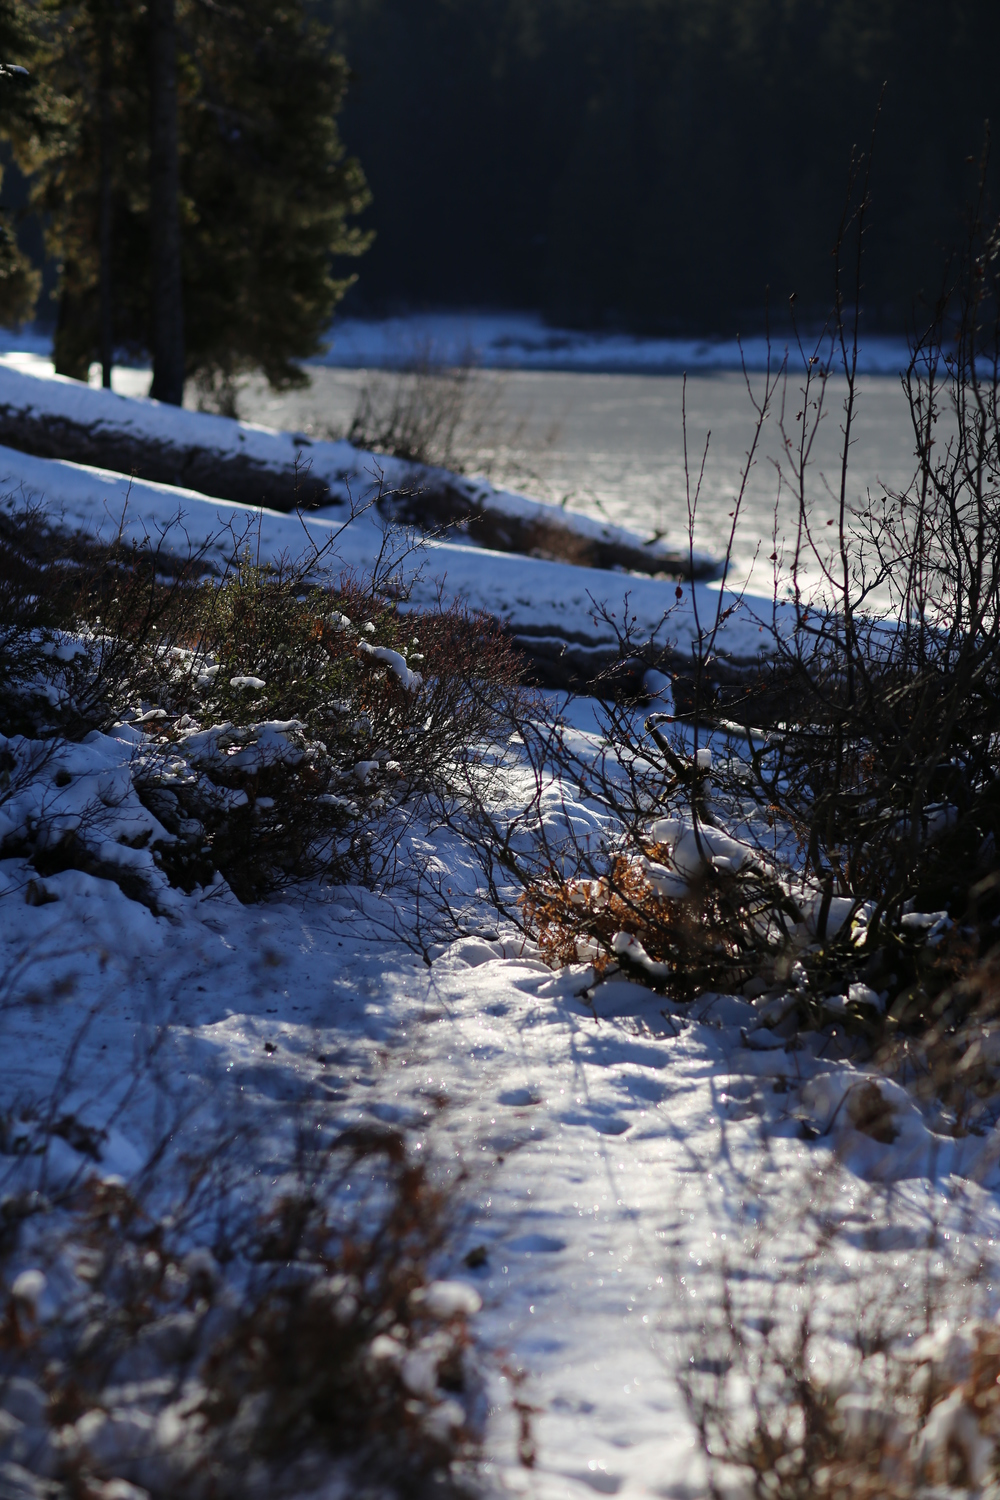 Snowy trail along the shoreline